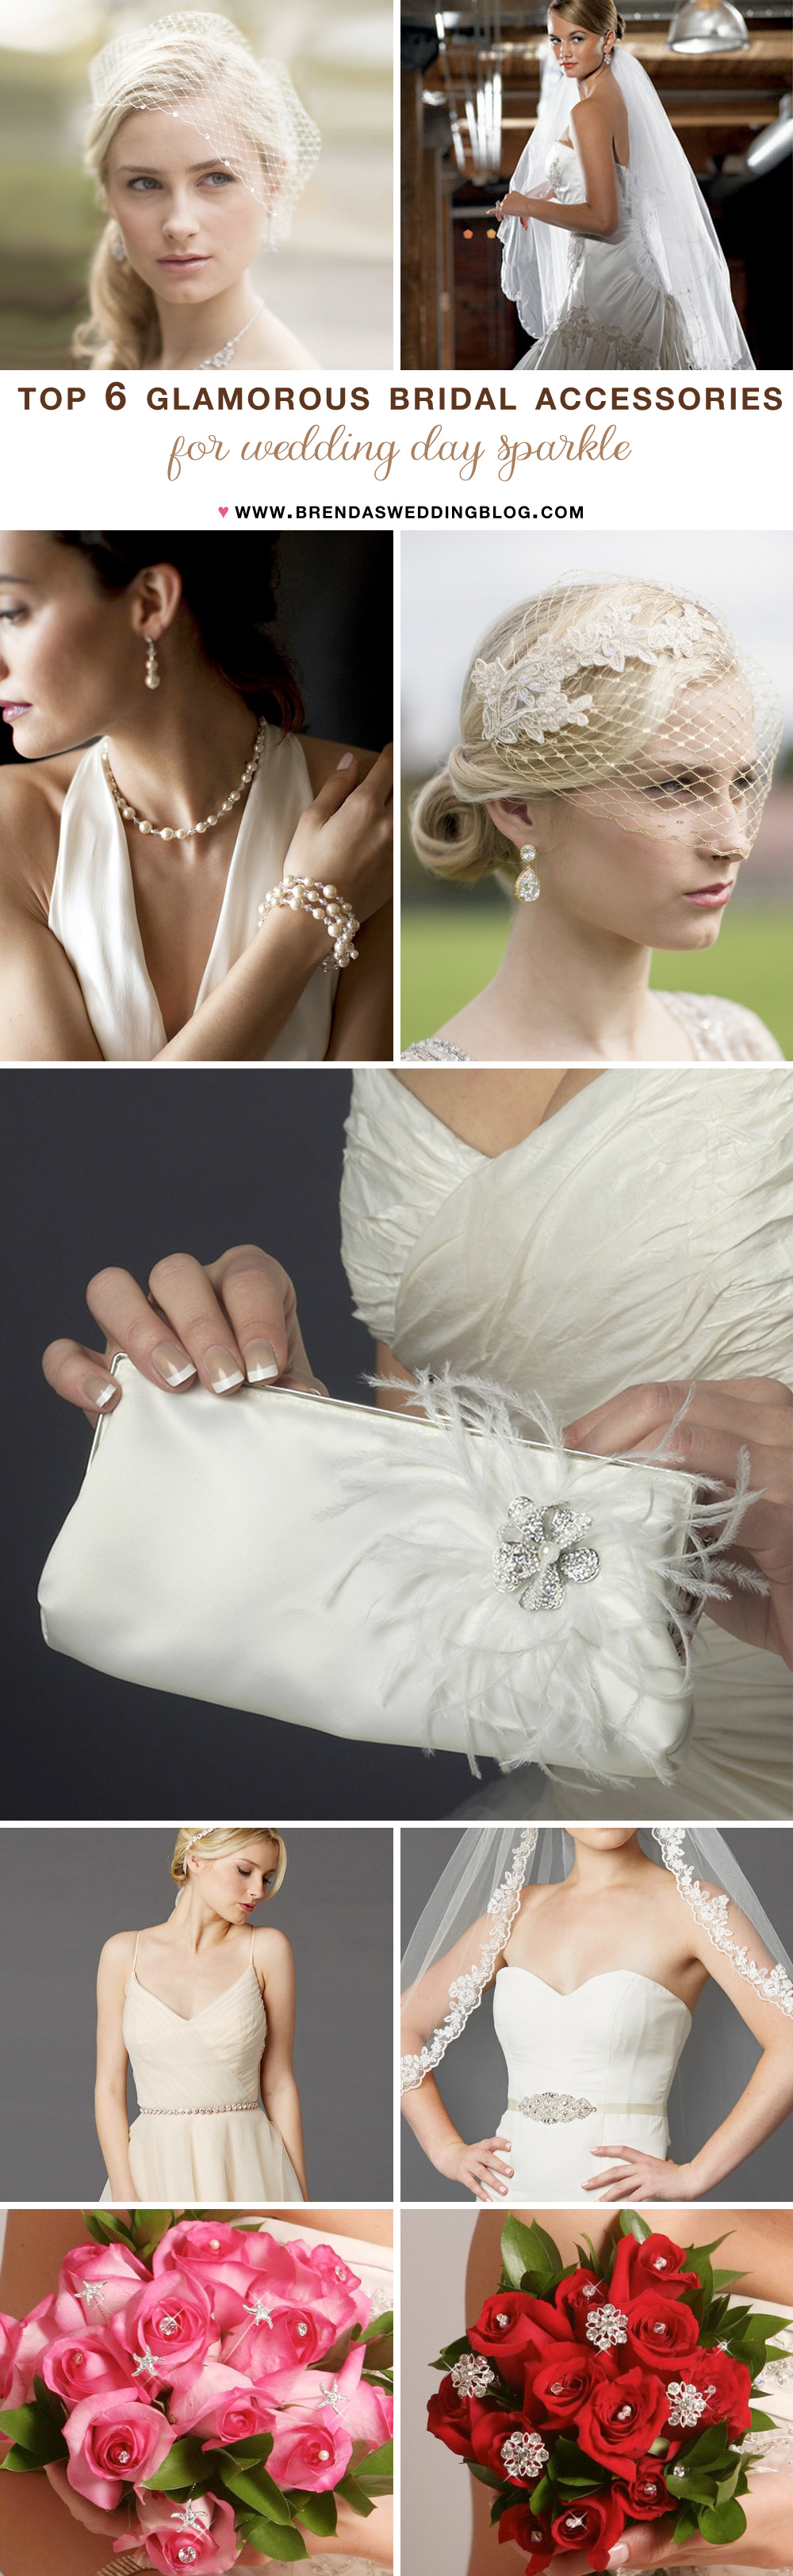 Top 6 Glamorous Bridal Accessories to Sparkle on Your ...